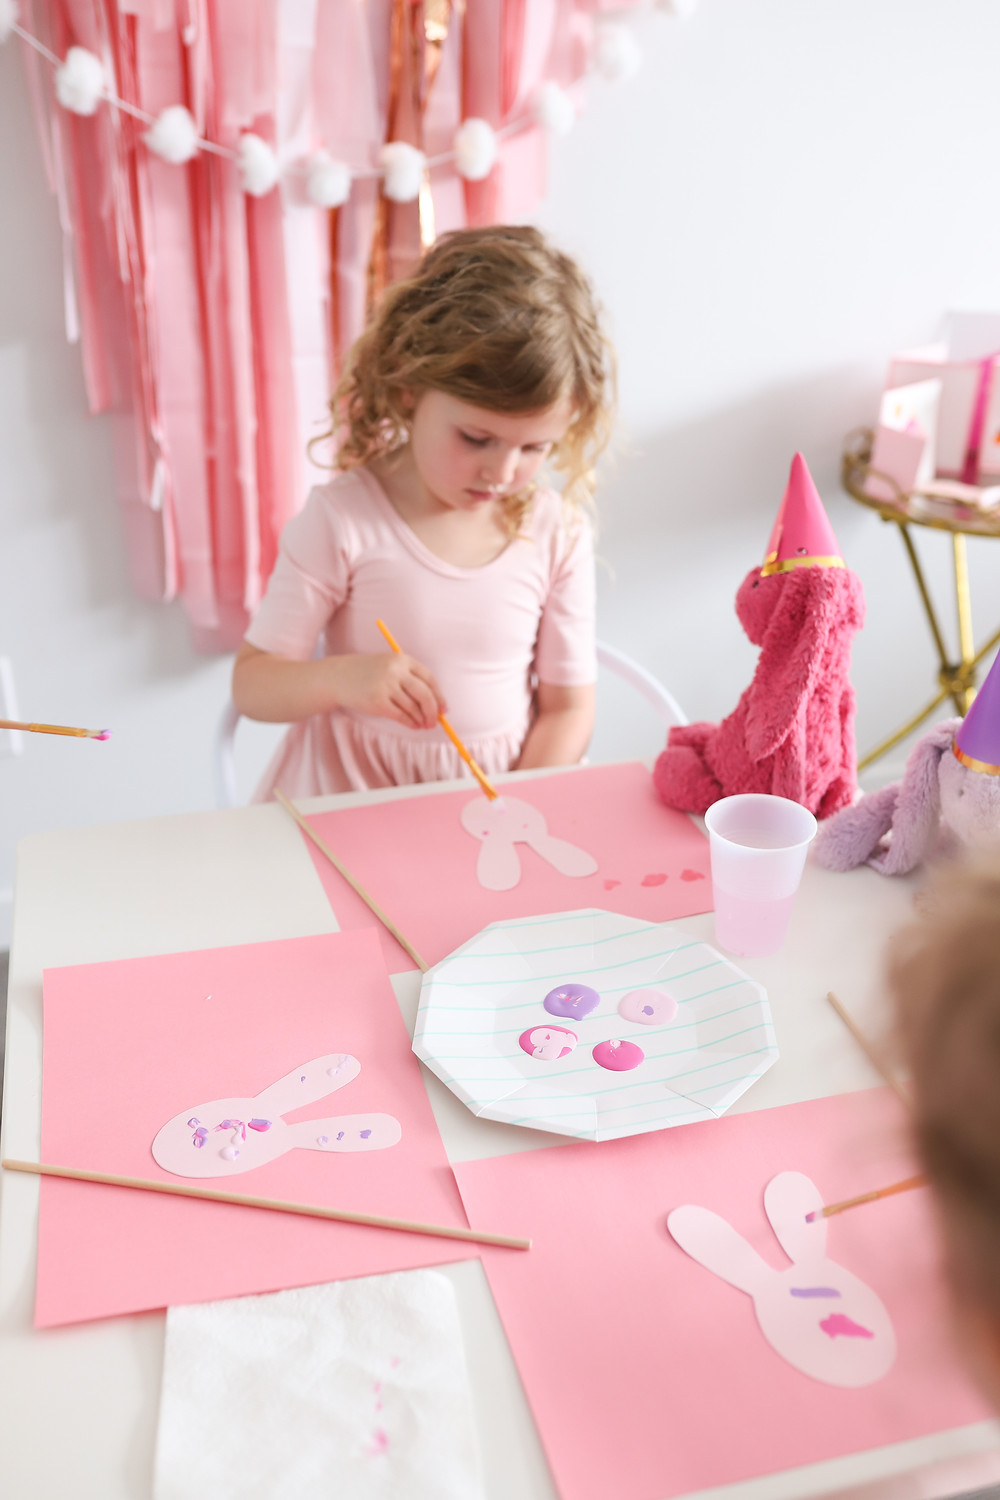 A little blonde girl sitting at a table at a birthday party painting a pink and purple bunny craft.